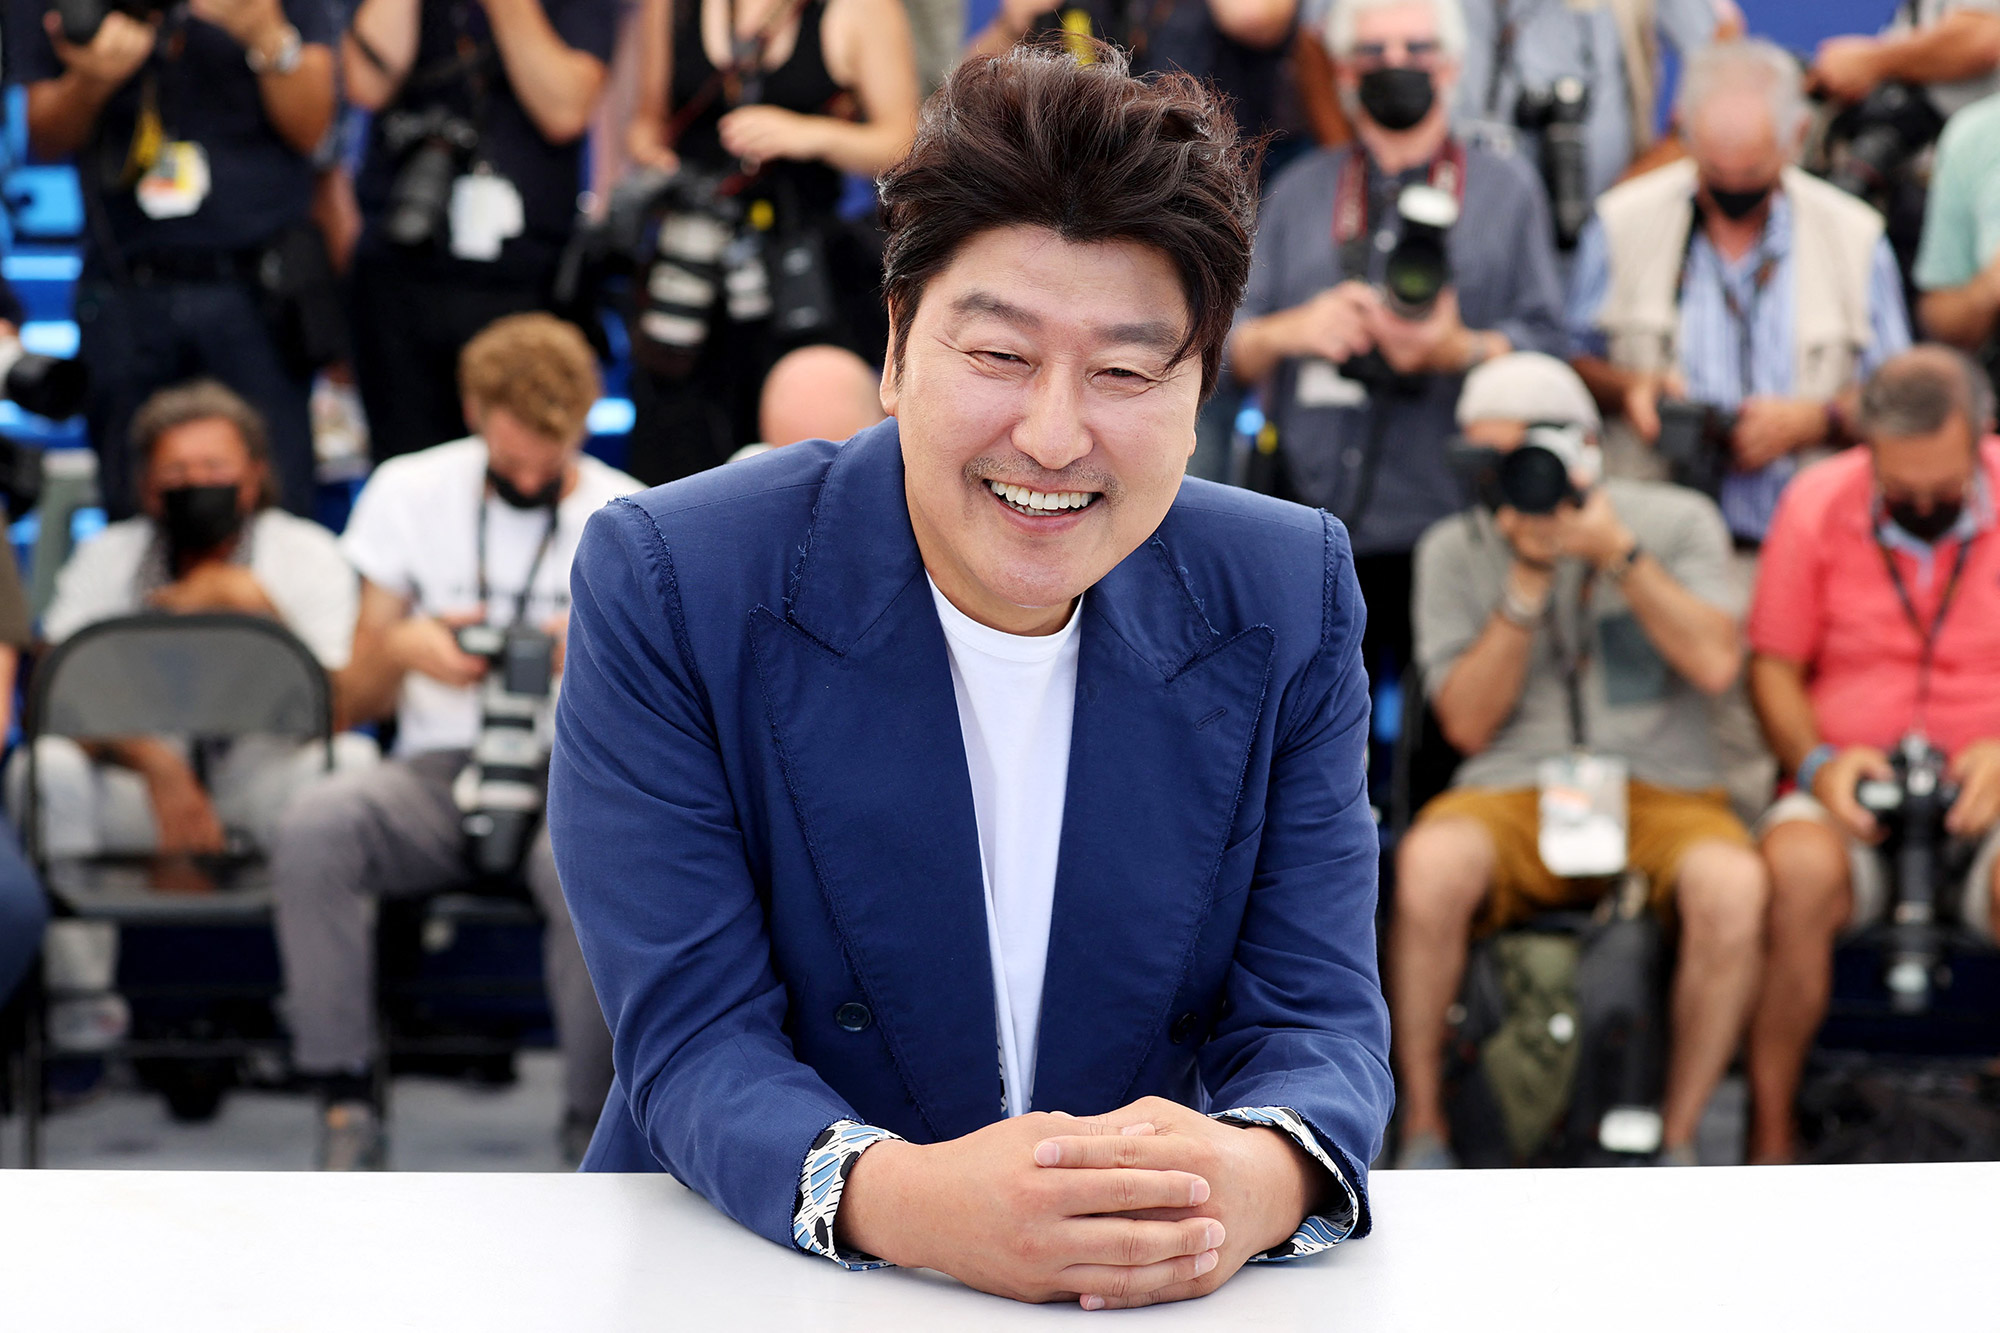 """South Korean actor Song Kang-Ho poses during a photocall for the film """"Bi-Sang-Seon-Eon"""" (Emergency Declaration) at the 74th edition of the Cannes Film Festival in Cannes, southern France, on July 16, 2021"""